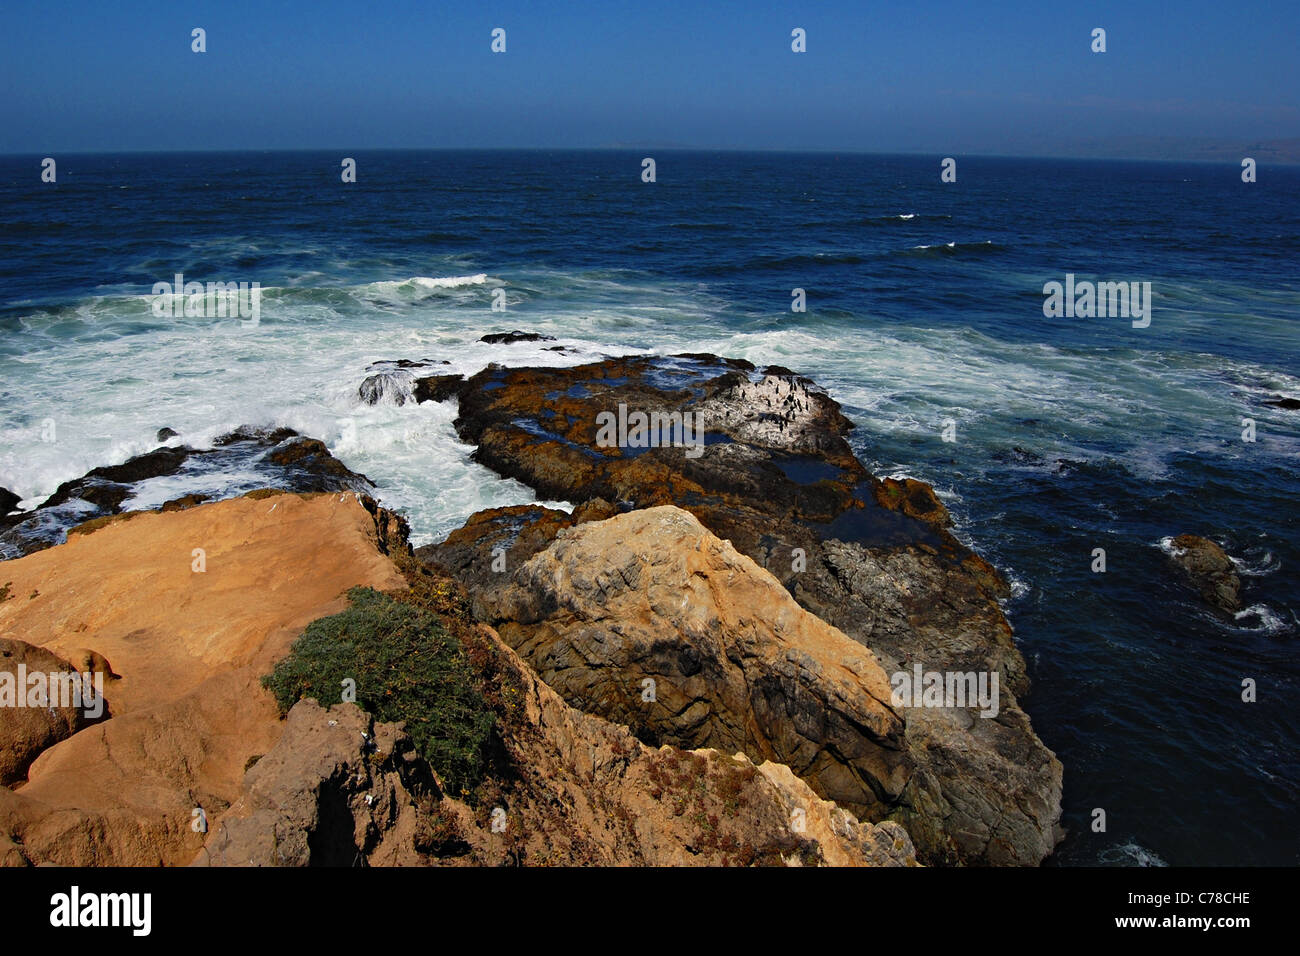 Tomales Point, Point Reyes National Seashore, California - Stock Image